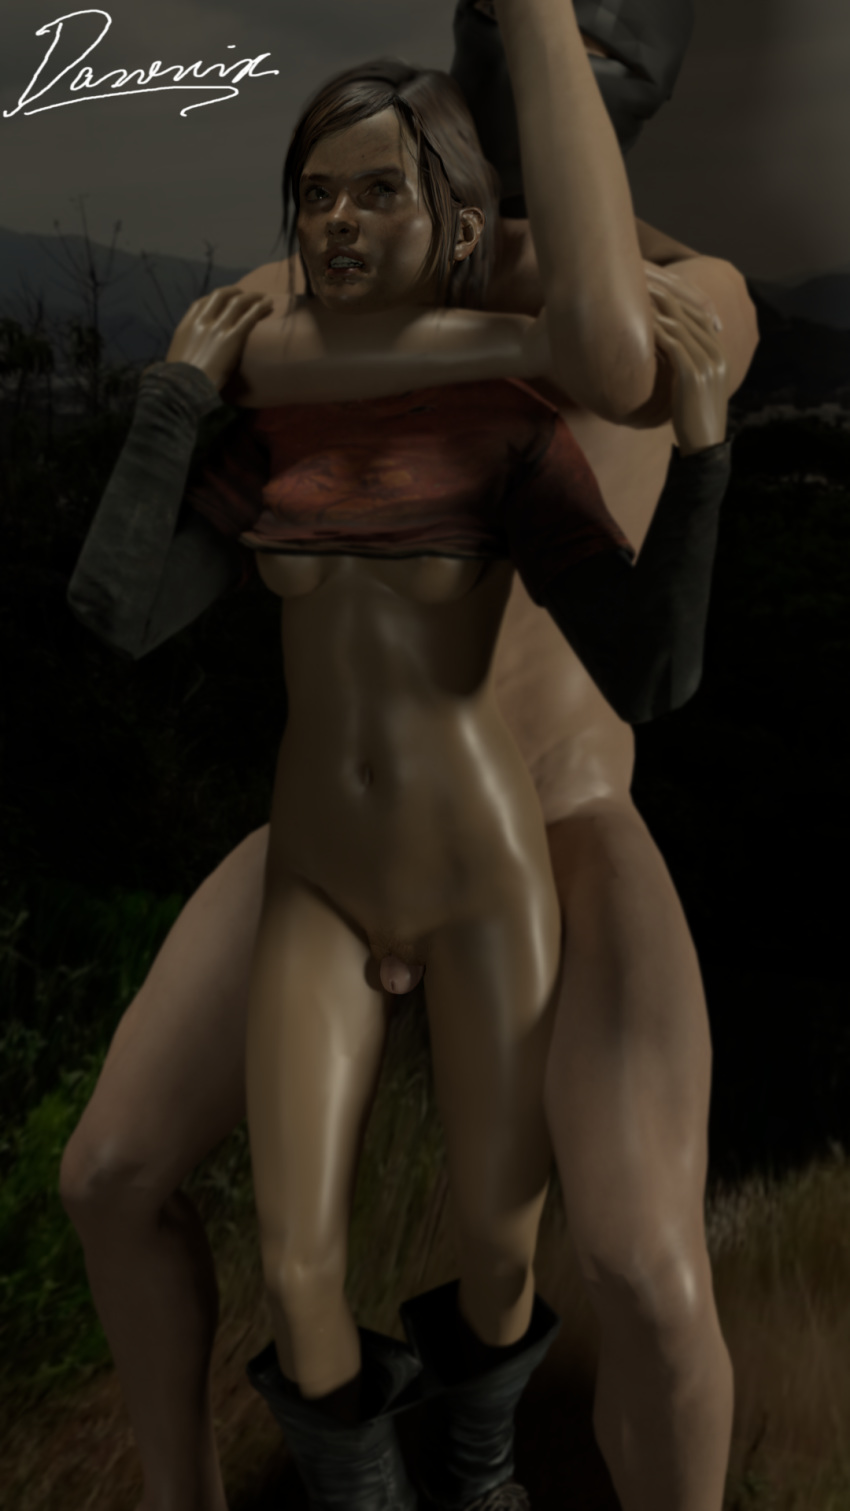 sfm porn last of the us Breath of fire